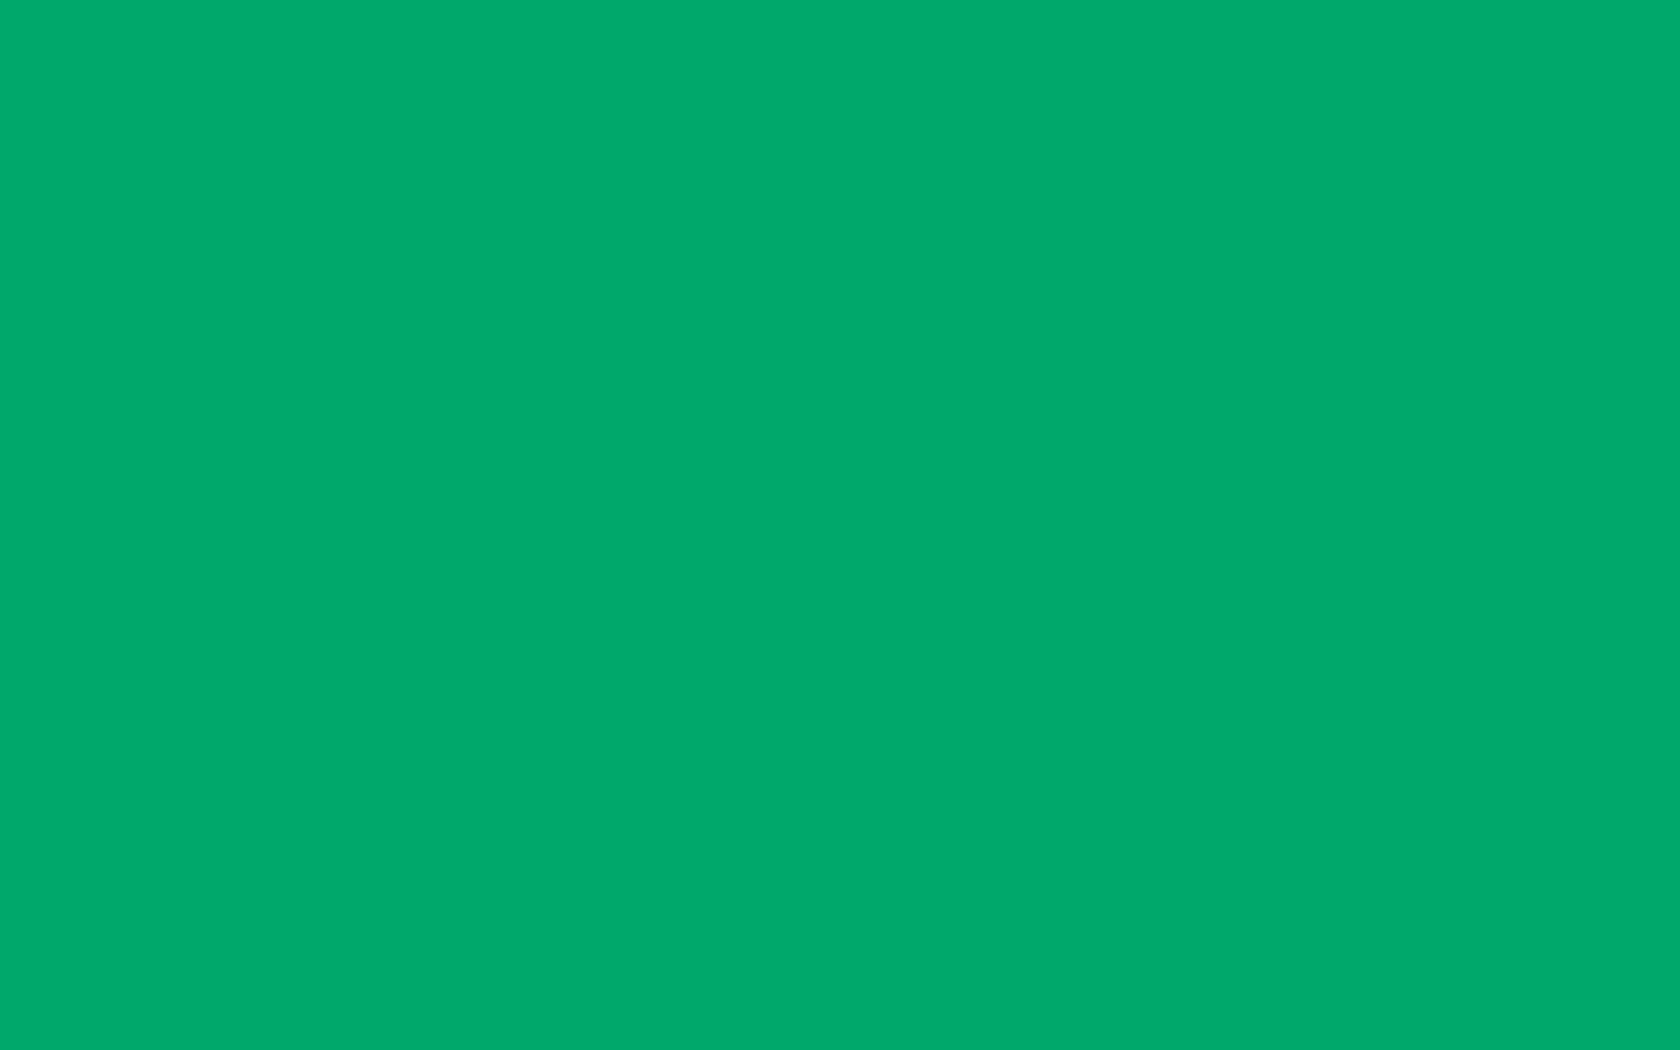 1680x1050 Jade Solid Color Background